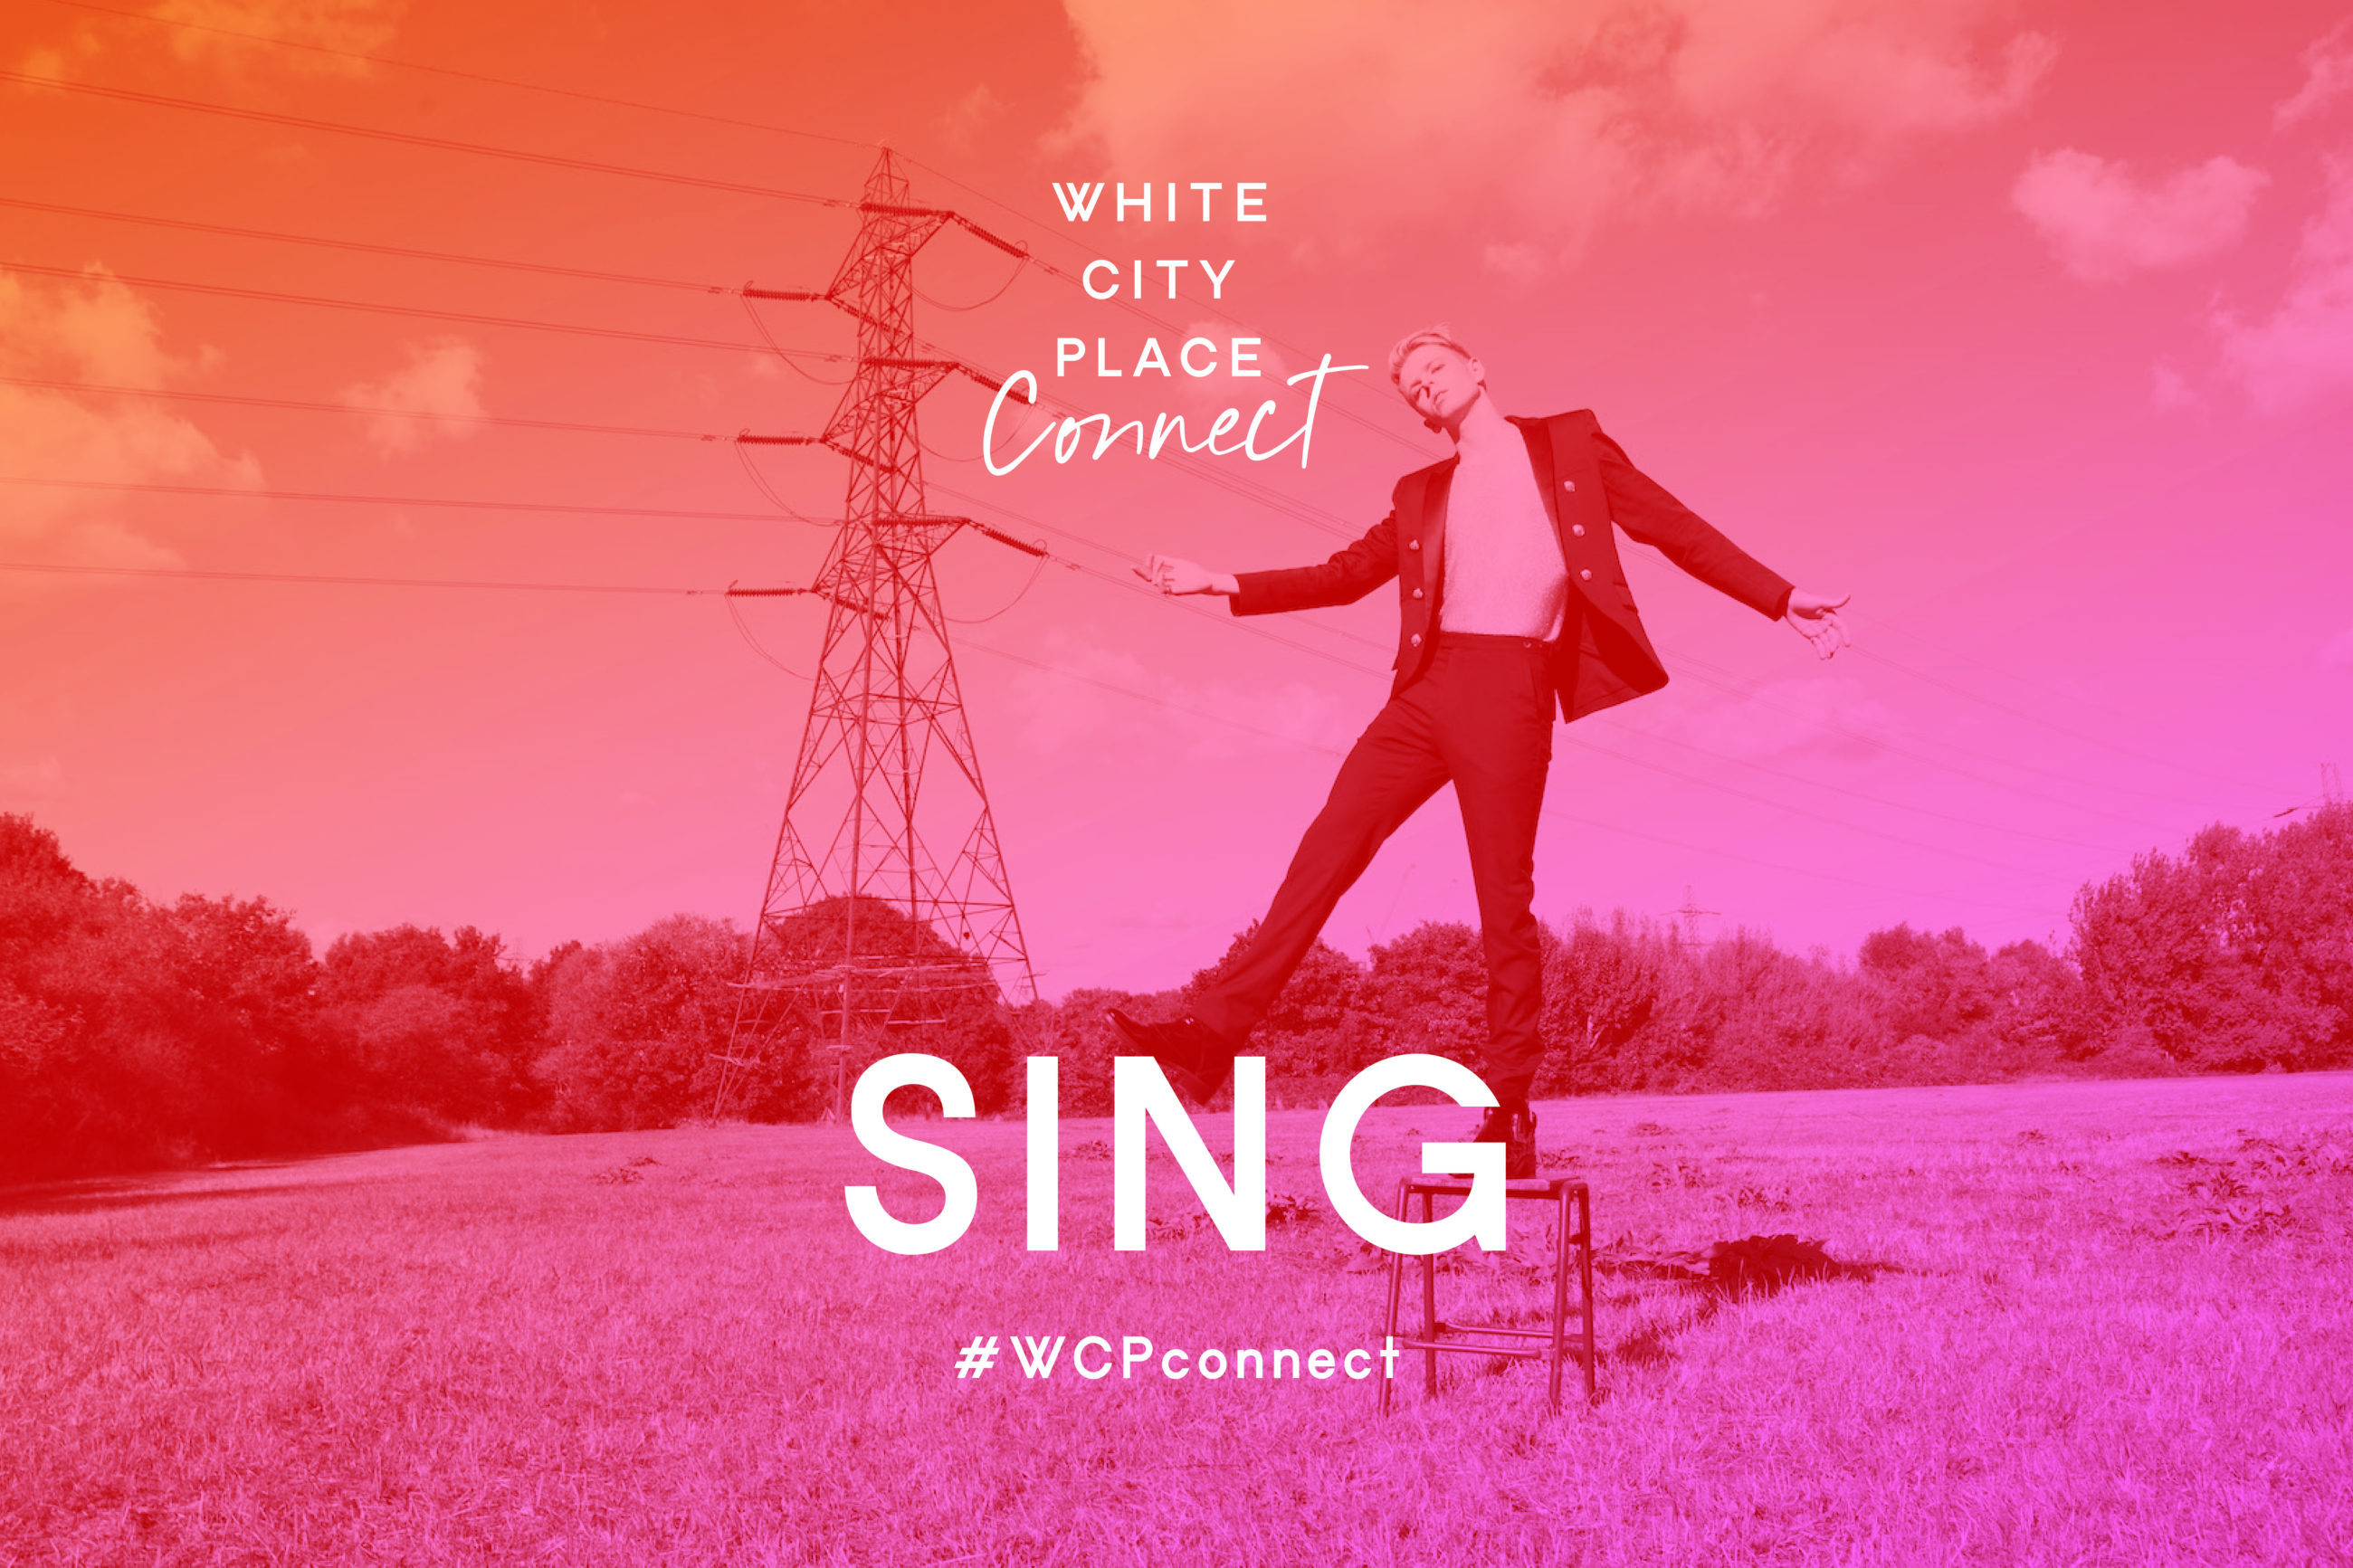 White City Place Connect: Sing Feature Image